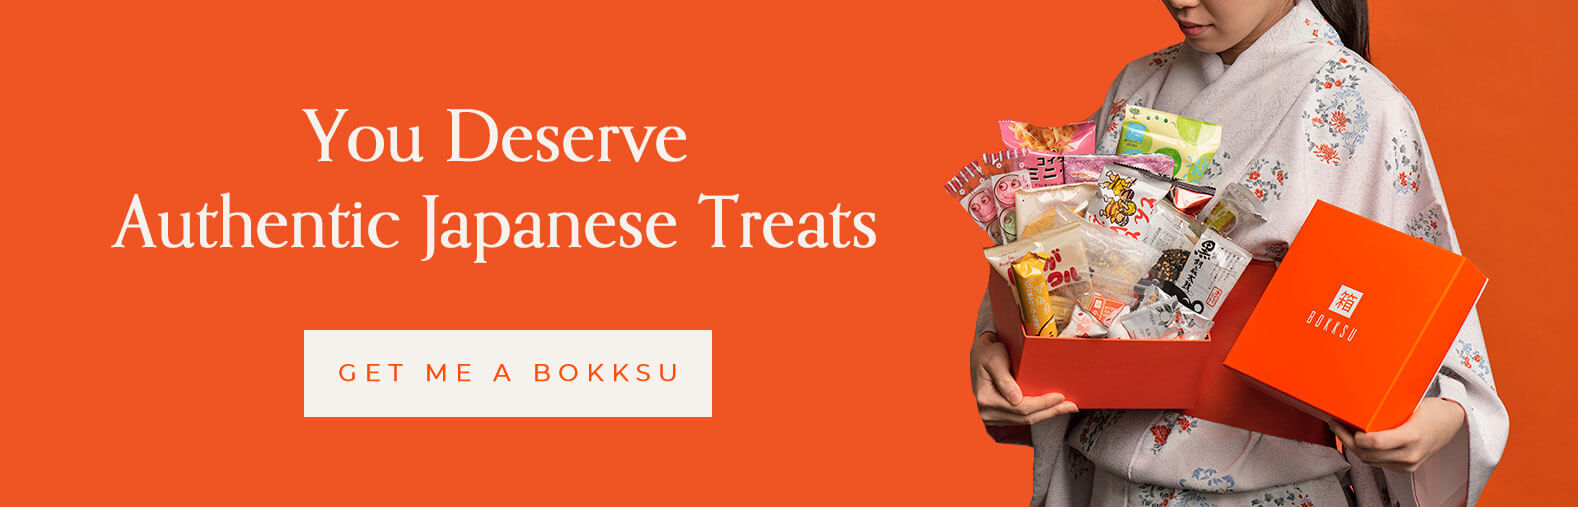 You deserve authentic Japanese snacks